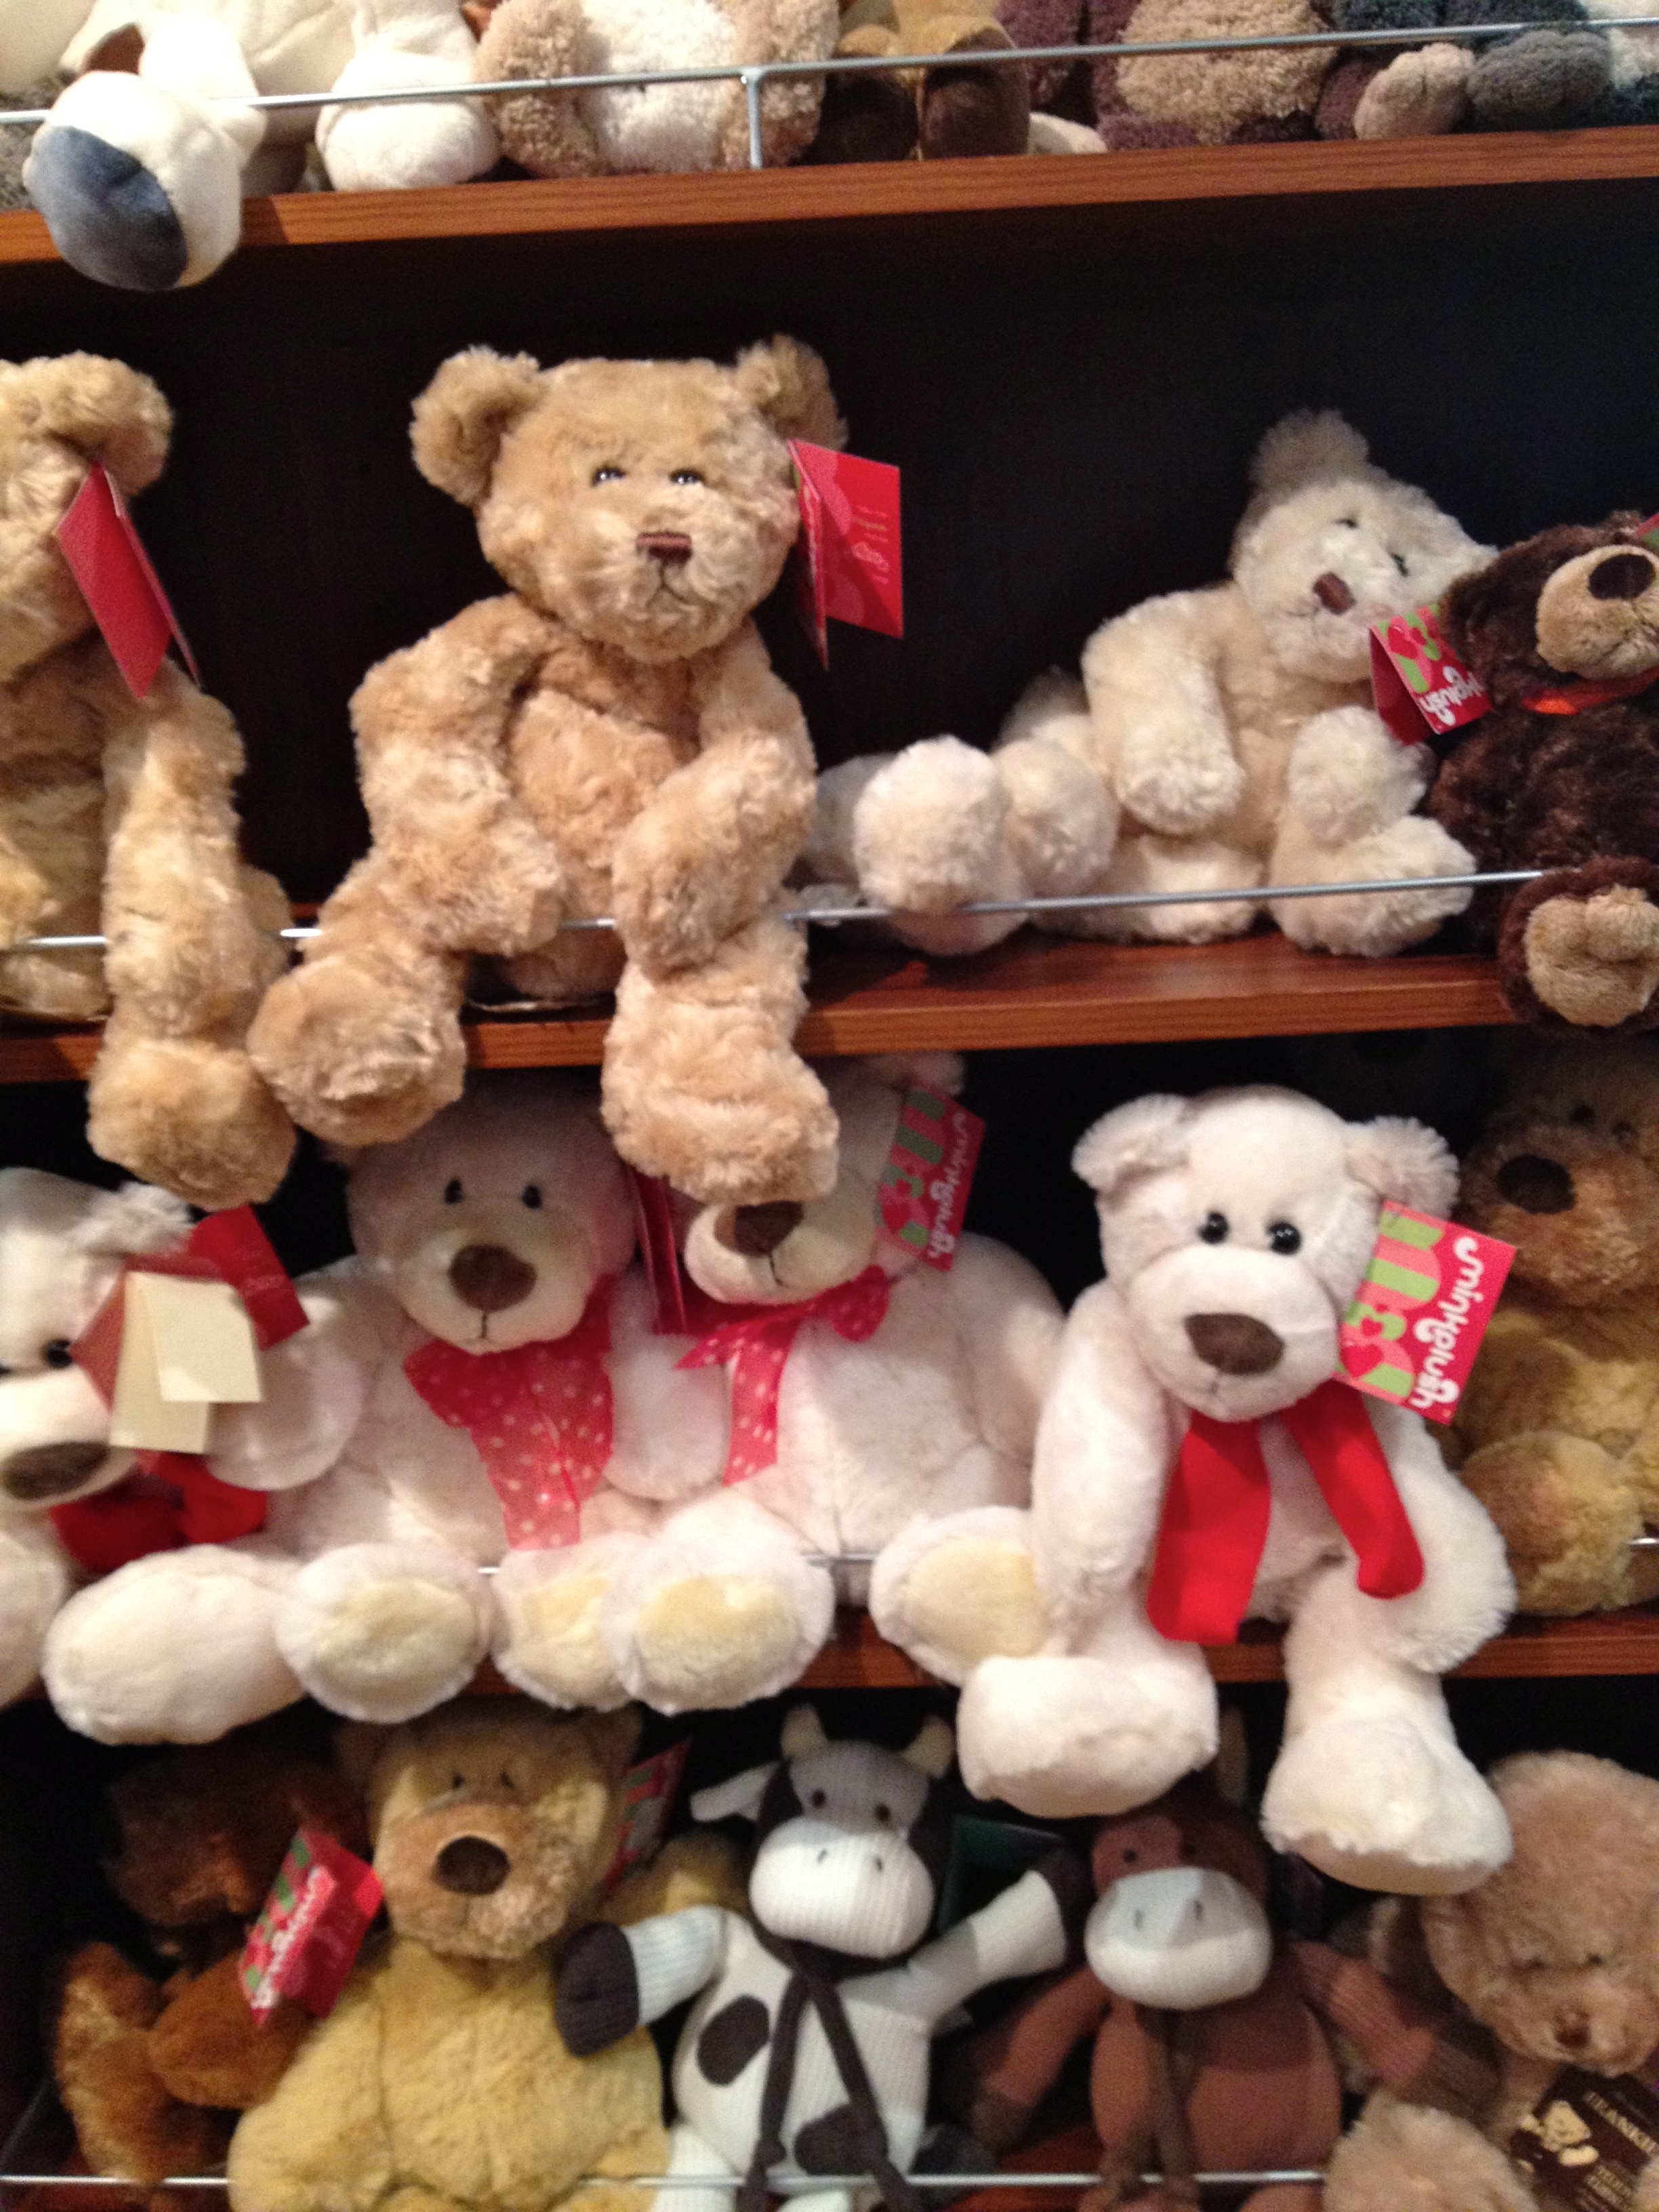 The teddy bear shop melbourne - Tedy shop ...